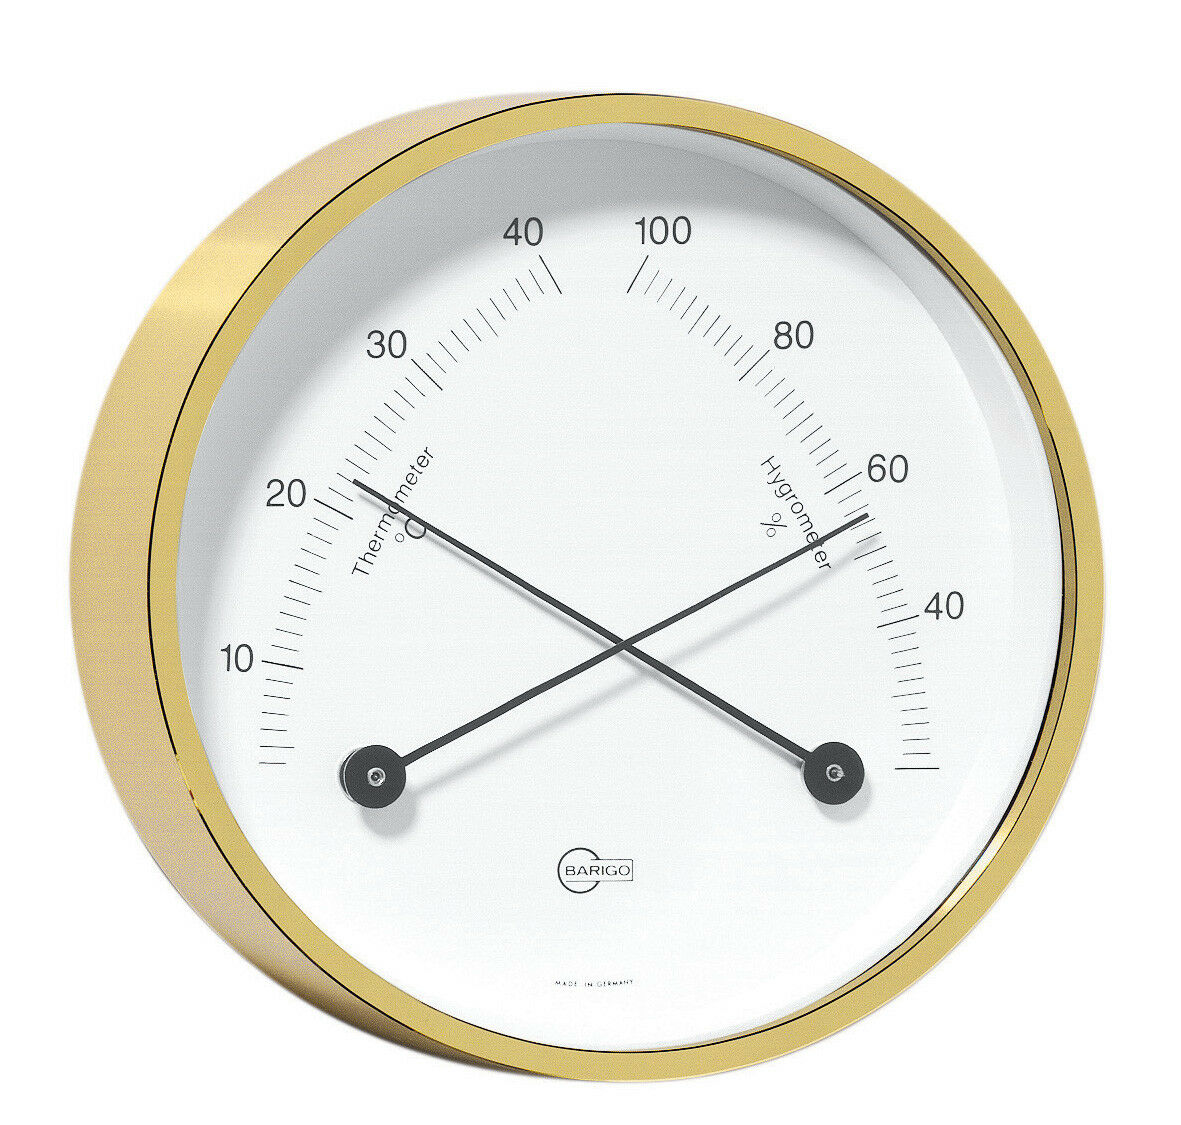 Thermohygrometer Barigo Home Messing Hängen Hängen Messing / Stellen 85mm 1cd845